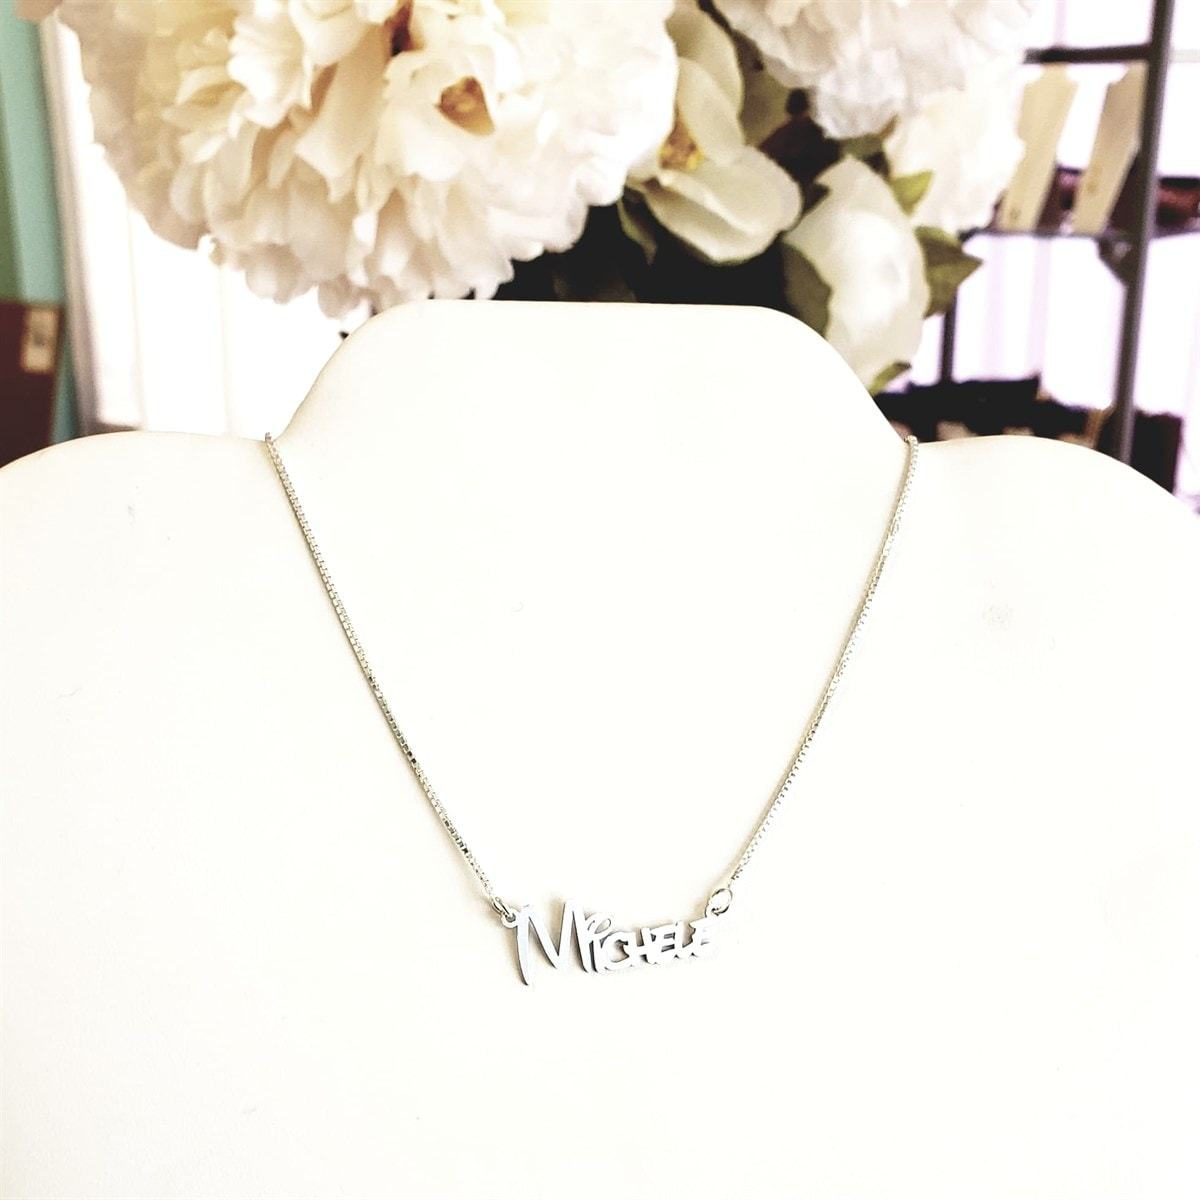 WG01 - Fiesta Children Name Necklace